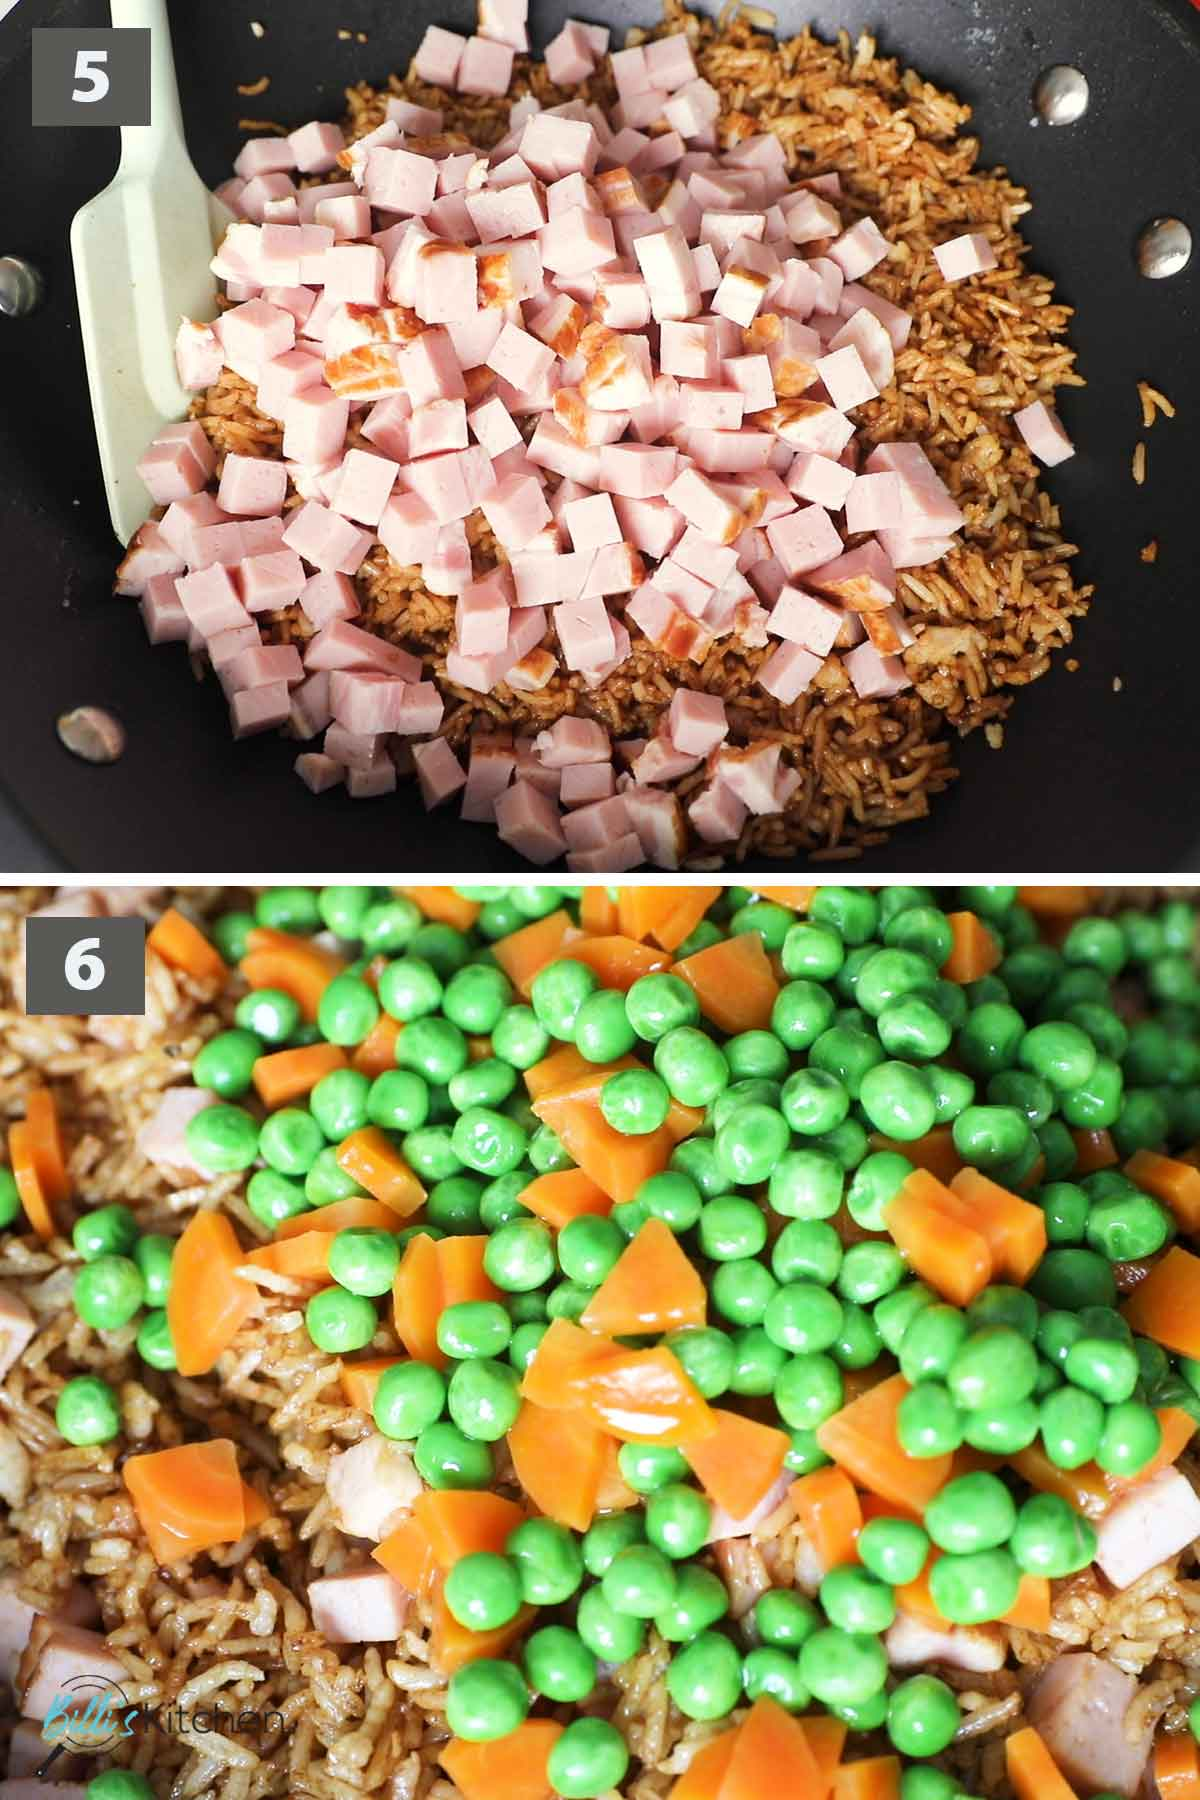 Second part of a collage of images showing the step by step process of making fried rice with ham.